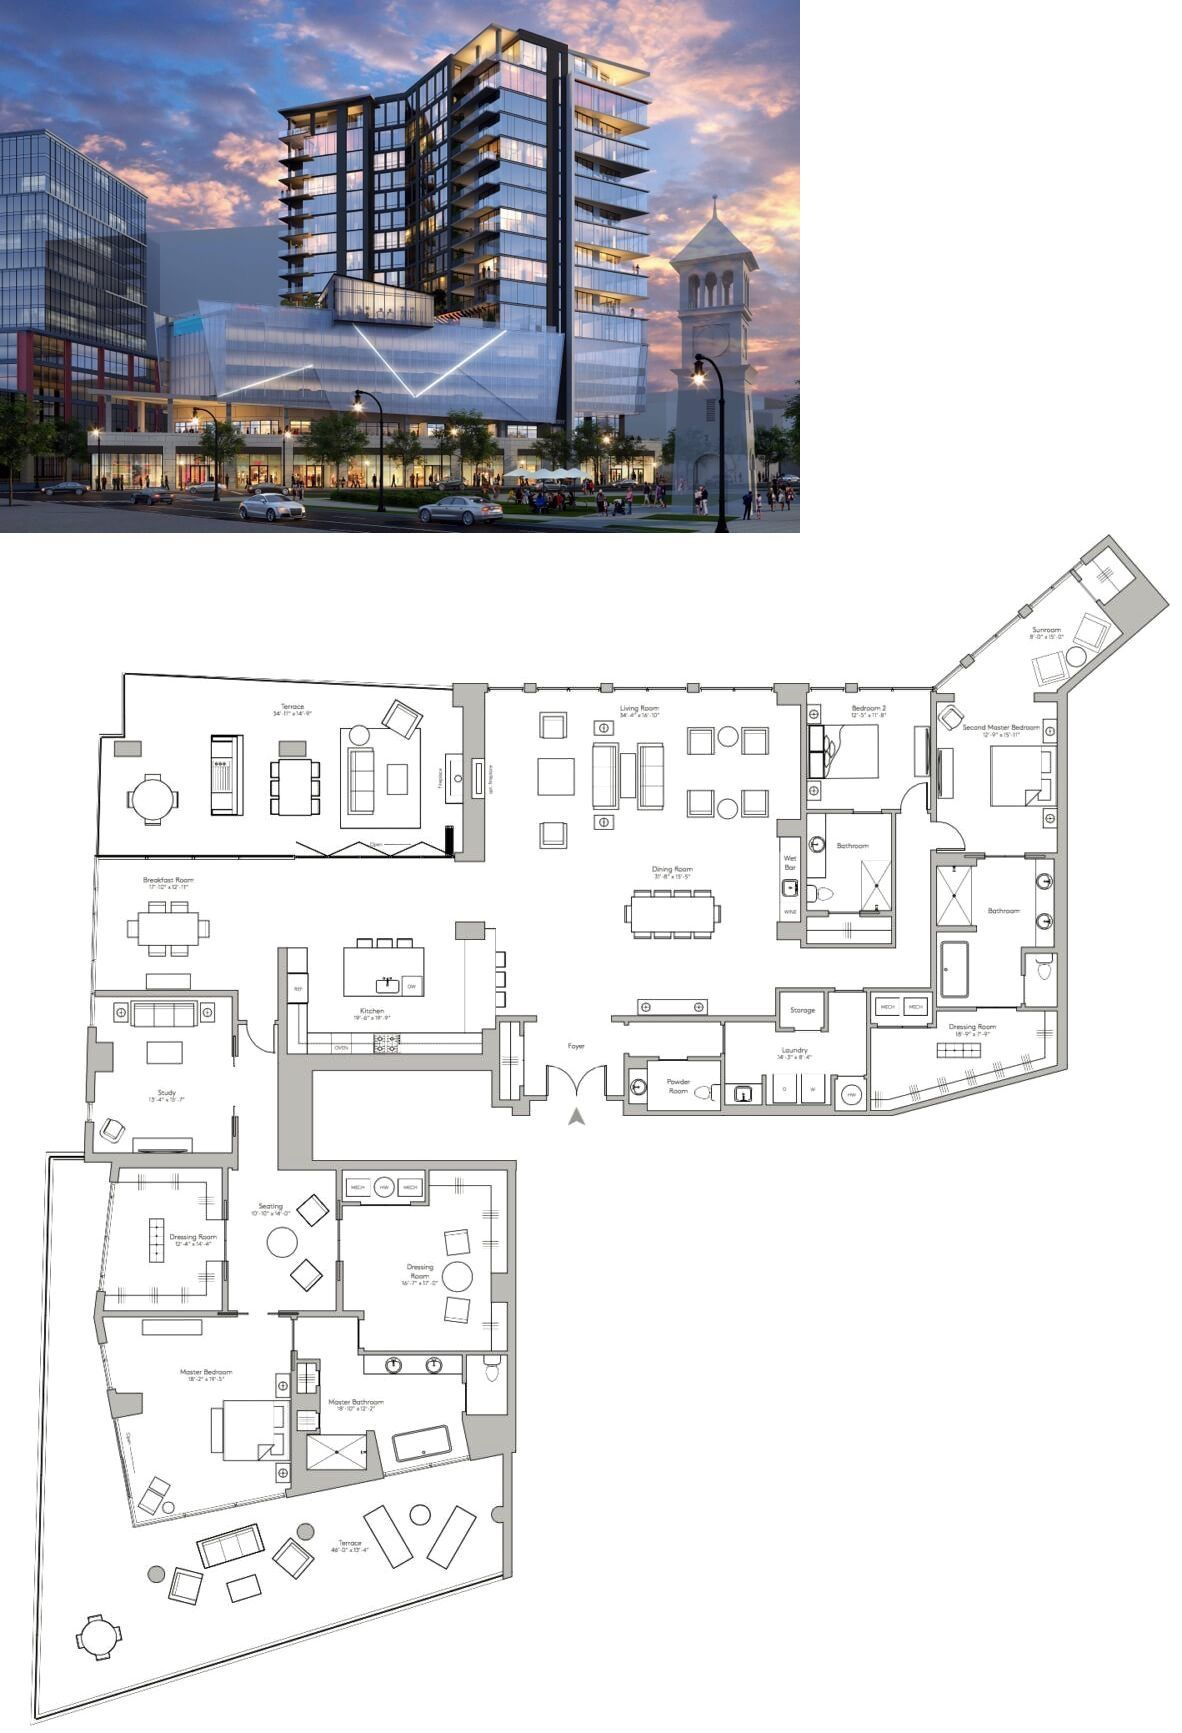 Update The Charles Condos Of Atlanta Ga Architectural Floor Plans House Layout Plans Mansion Floor Plan